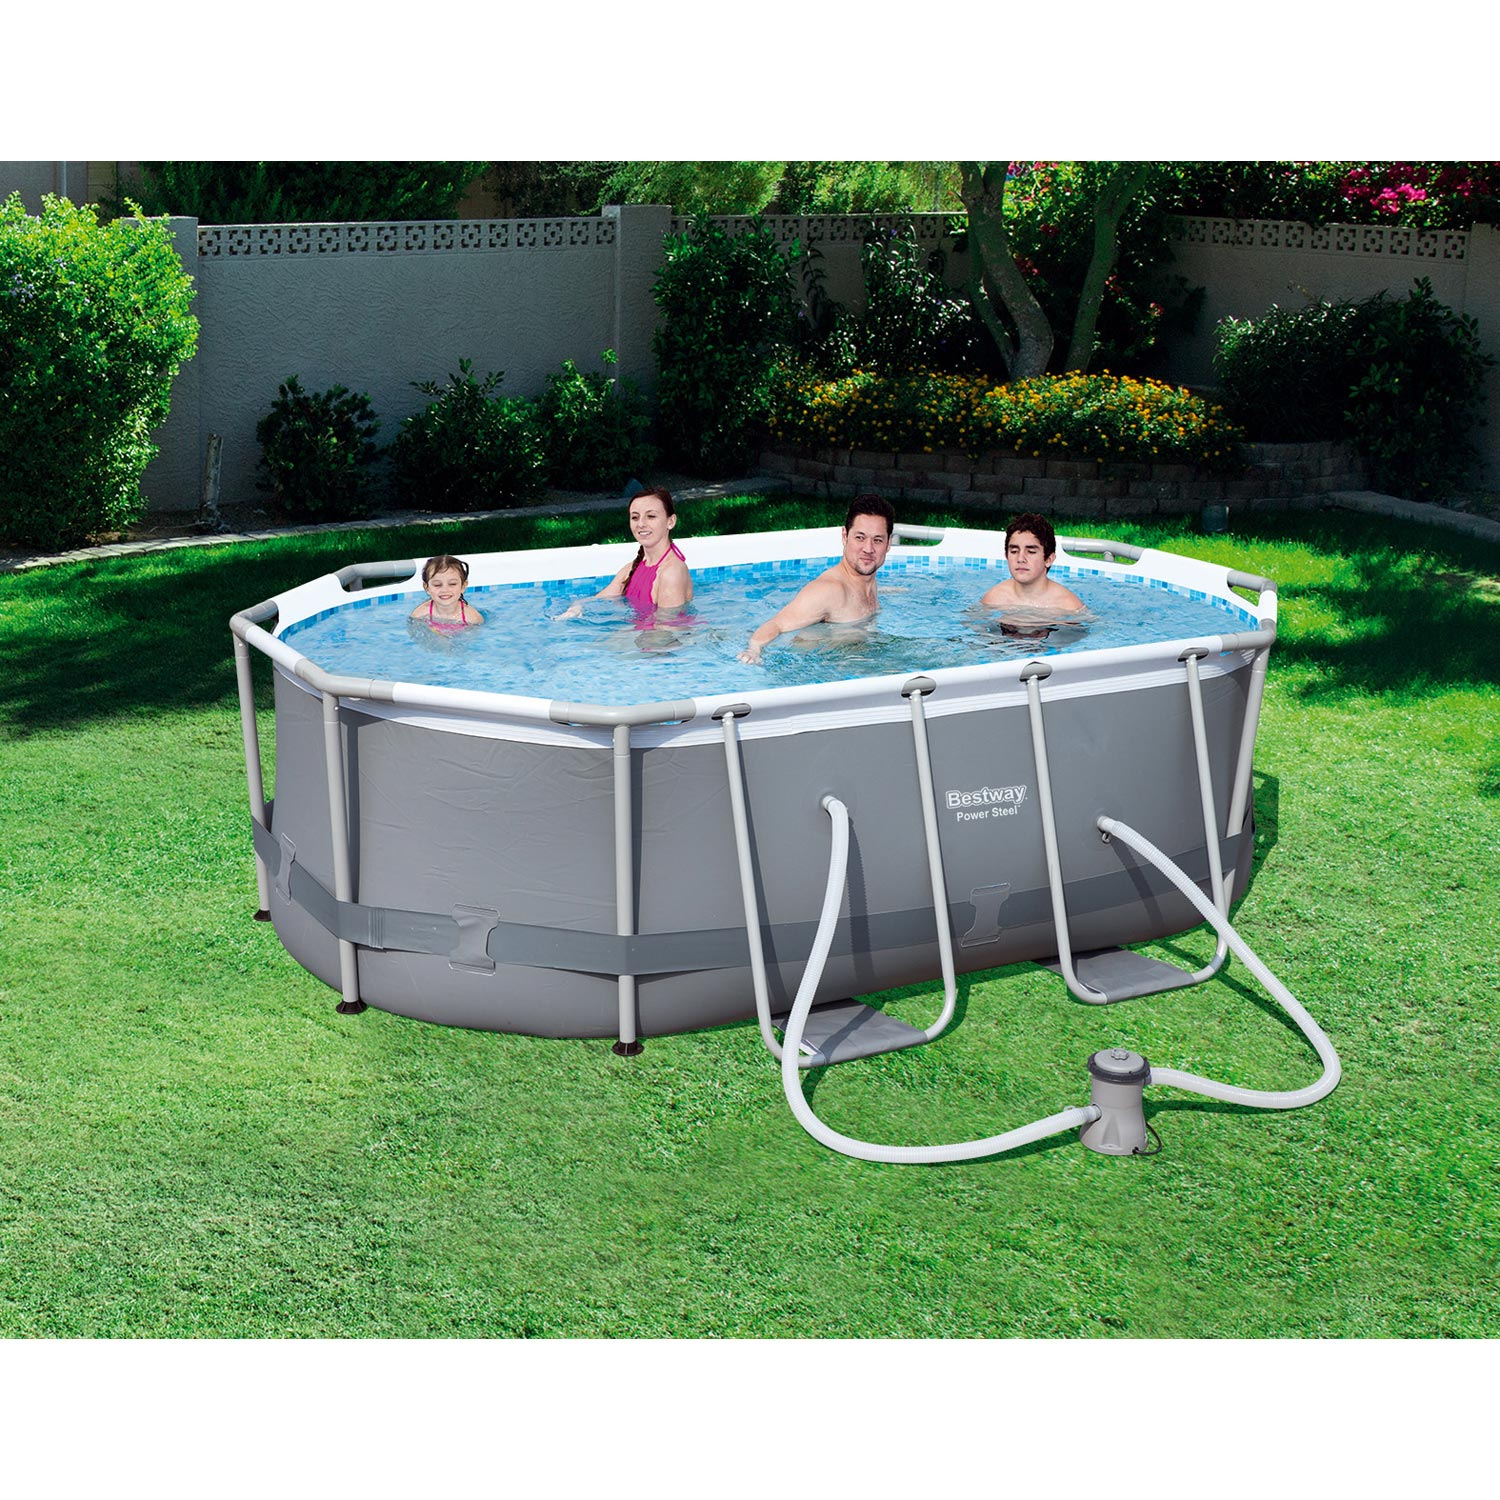 Piscine hors sol autoportante tubulaire bestway l 3 x l 2 for Piscine 42